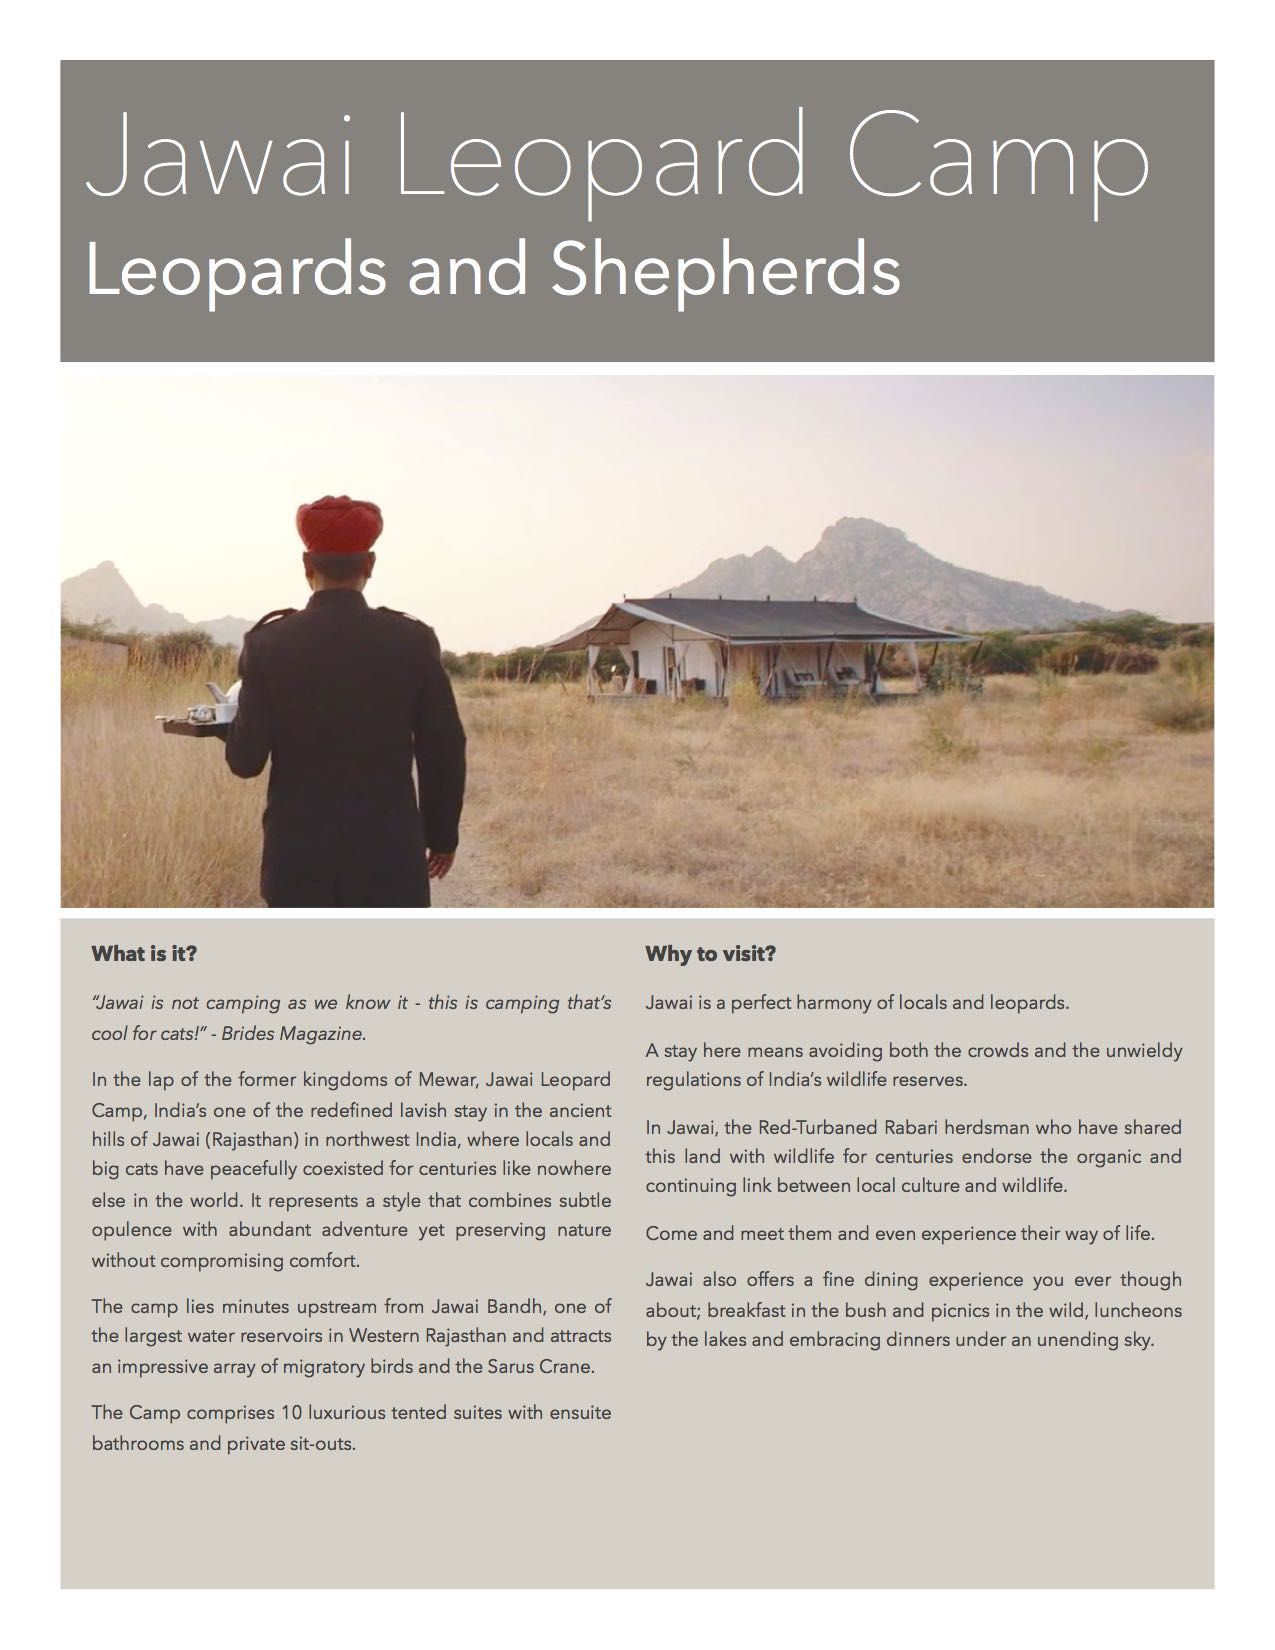 Jawai Leopard Camp - Your stay in Jawai, Rajasthan